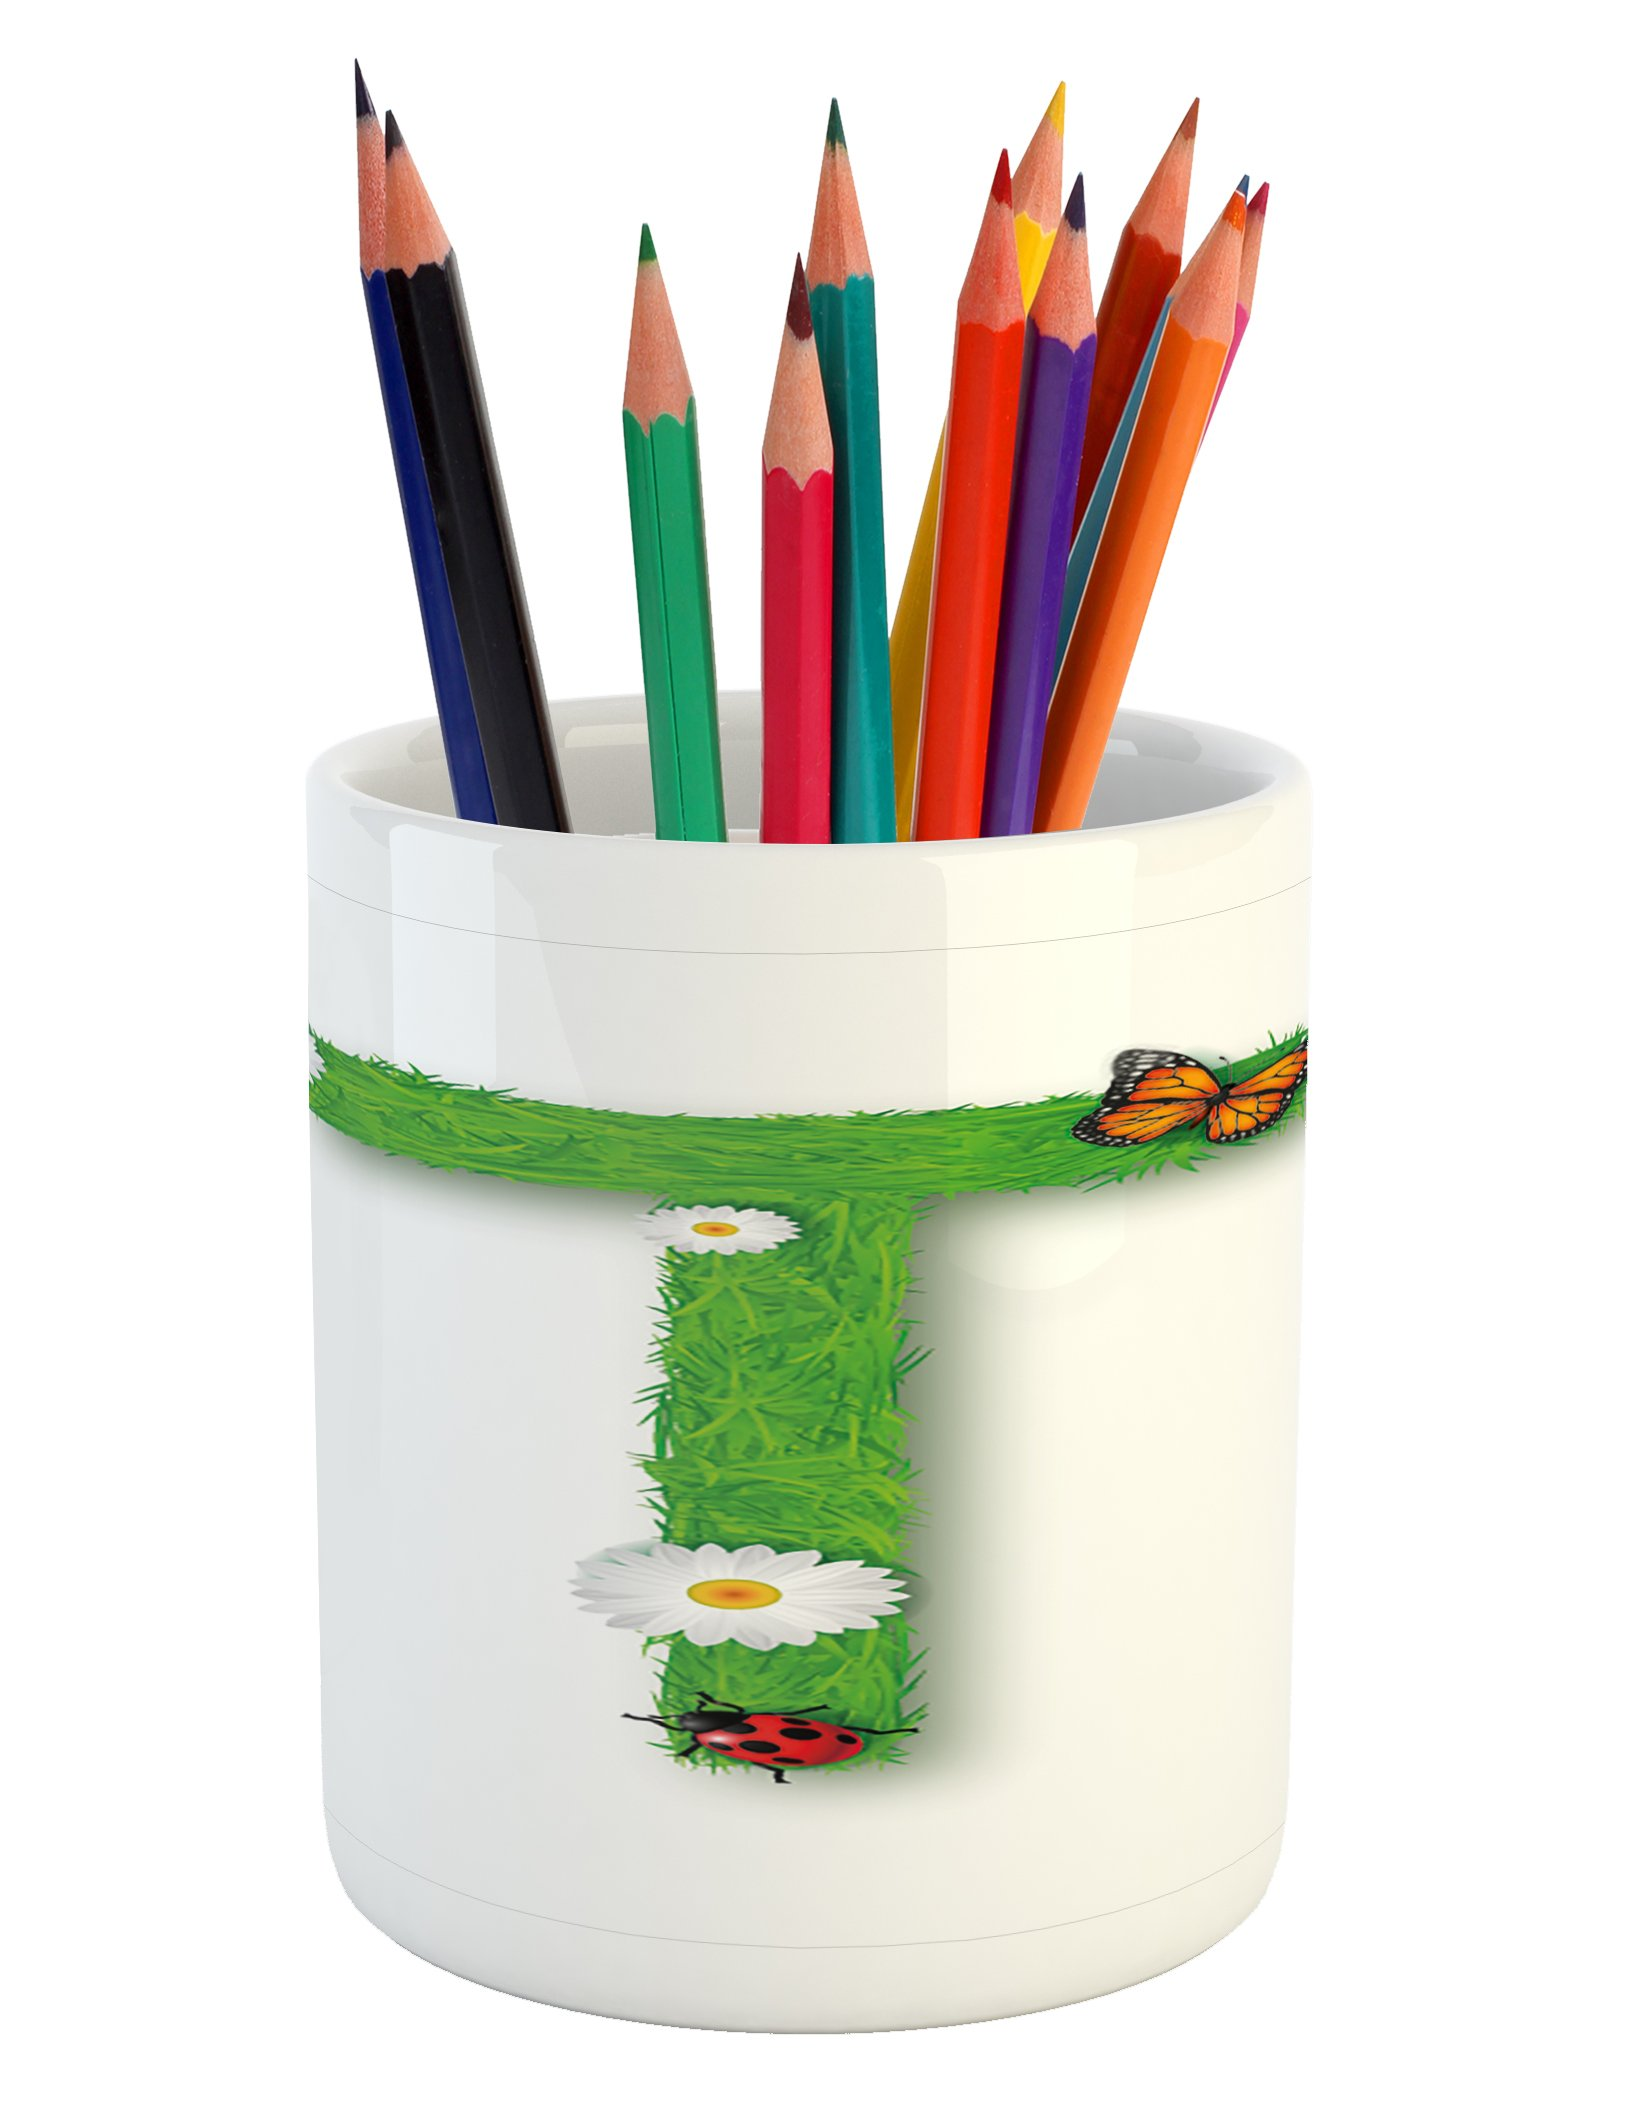 Ambesonne Letter T Pencil Pen Holder, Caps T with Flourishing Fragrance Botanical Design and Ladybug Girls Room, Printed Ceramic Pencil Pen Holder for Desk Office Accessory, Green Multicolor